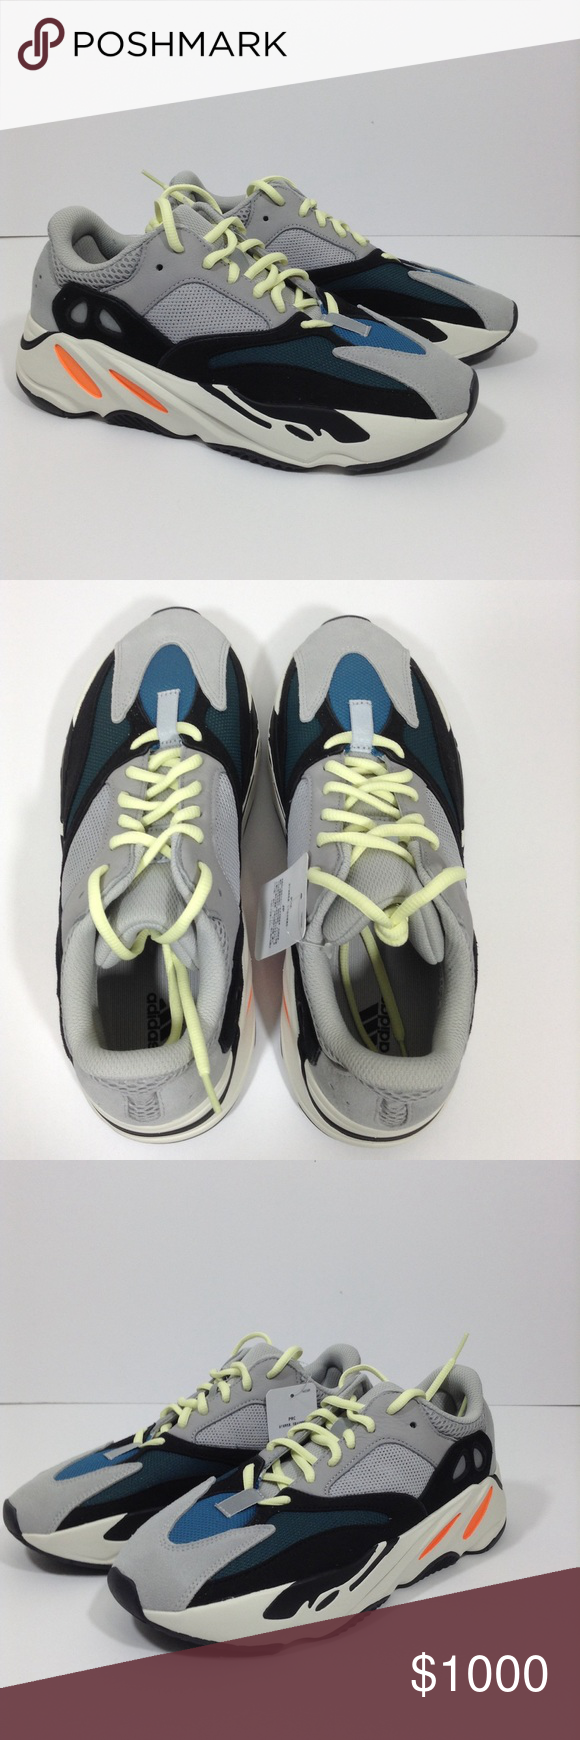 sports shoes e5251 50eb0 Adidas Boost Yeezy Wave Runner 700 Yeezy Supply New in Box ...